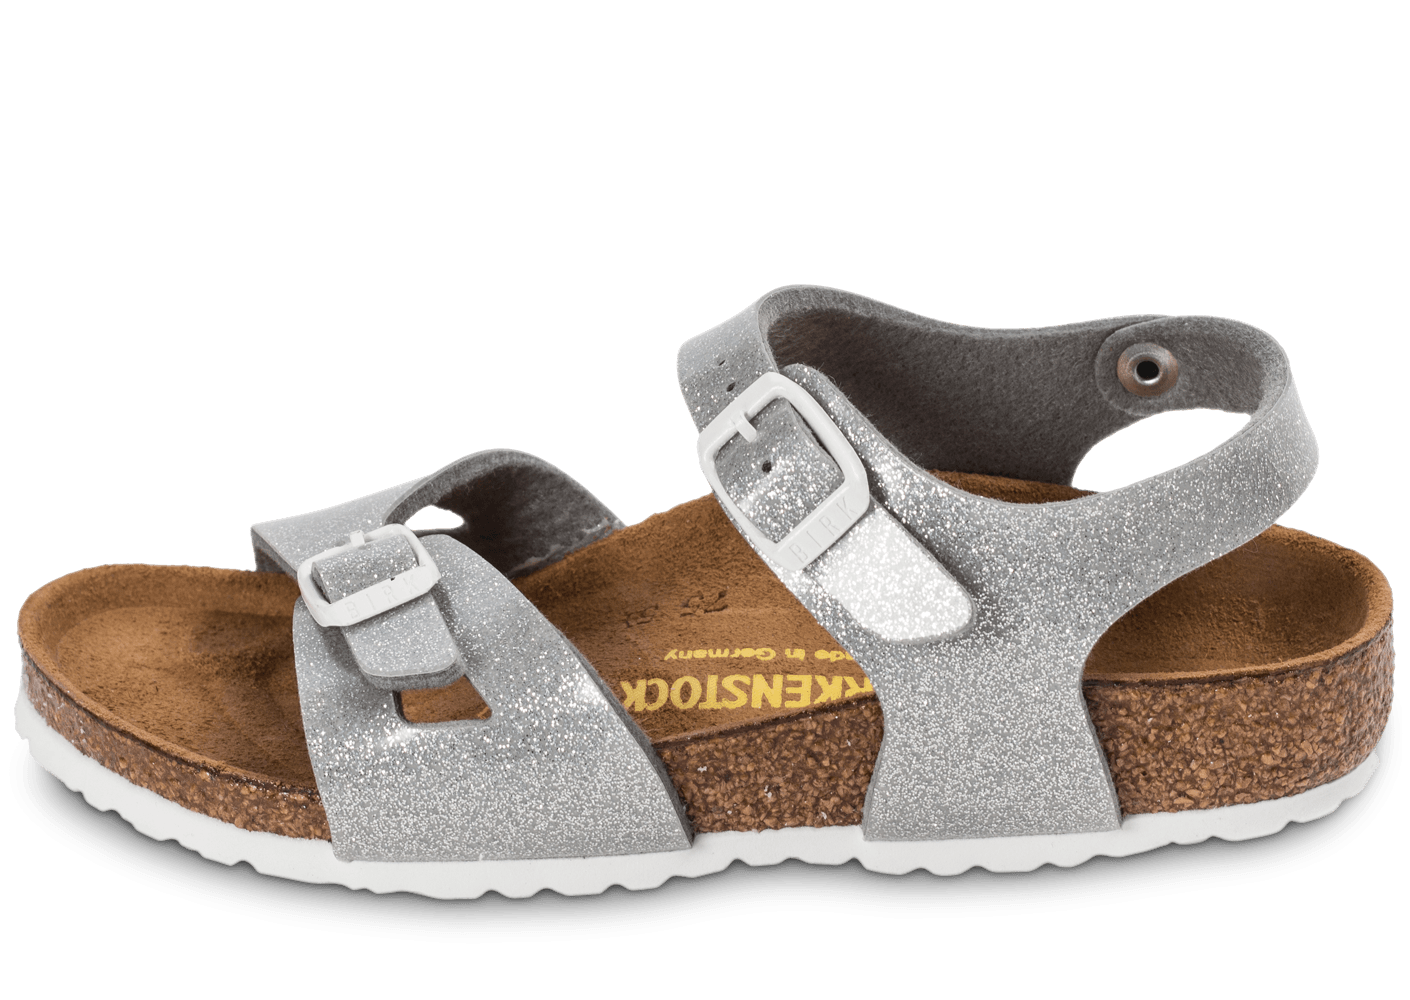 24430ad77b1 A feminine upgrade to a classic design. Discover the latest styles trends.  Shop our birkenstock sandals latest trends for women s